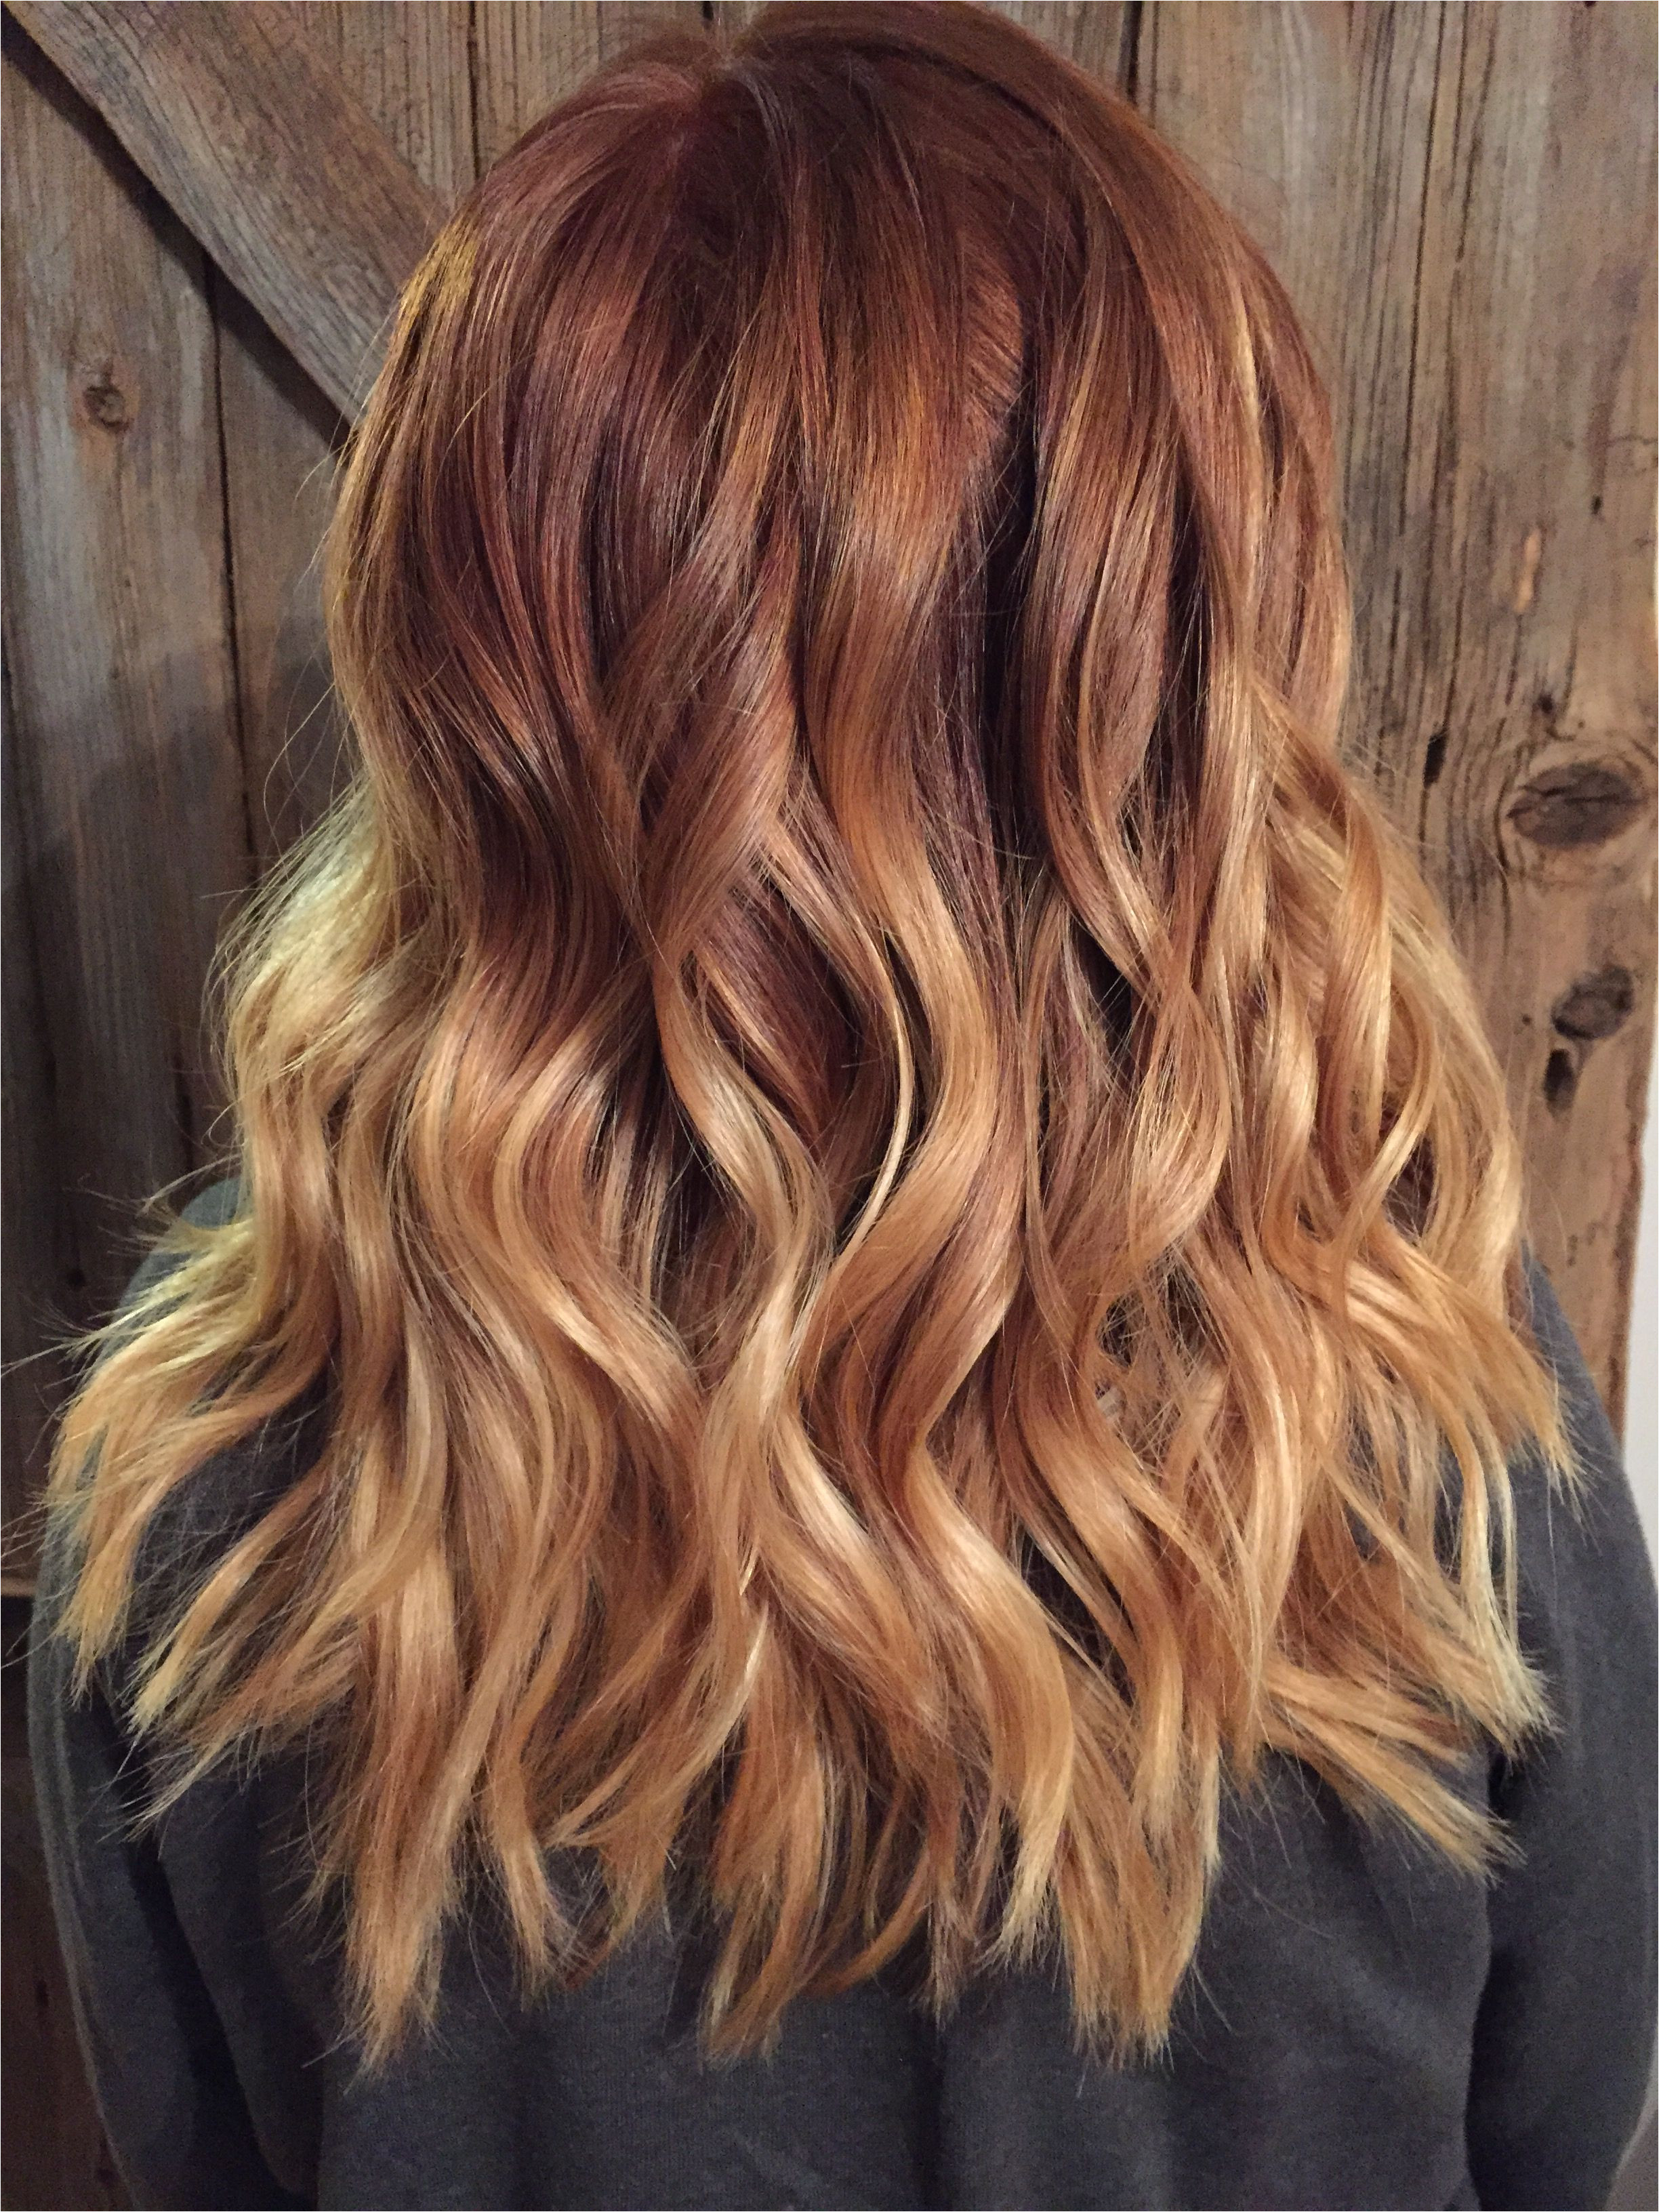 Hairstyles Copper Blonde Copper Red to Blonde Ombré with Balayage Highlights